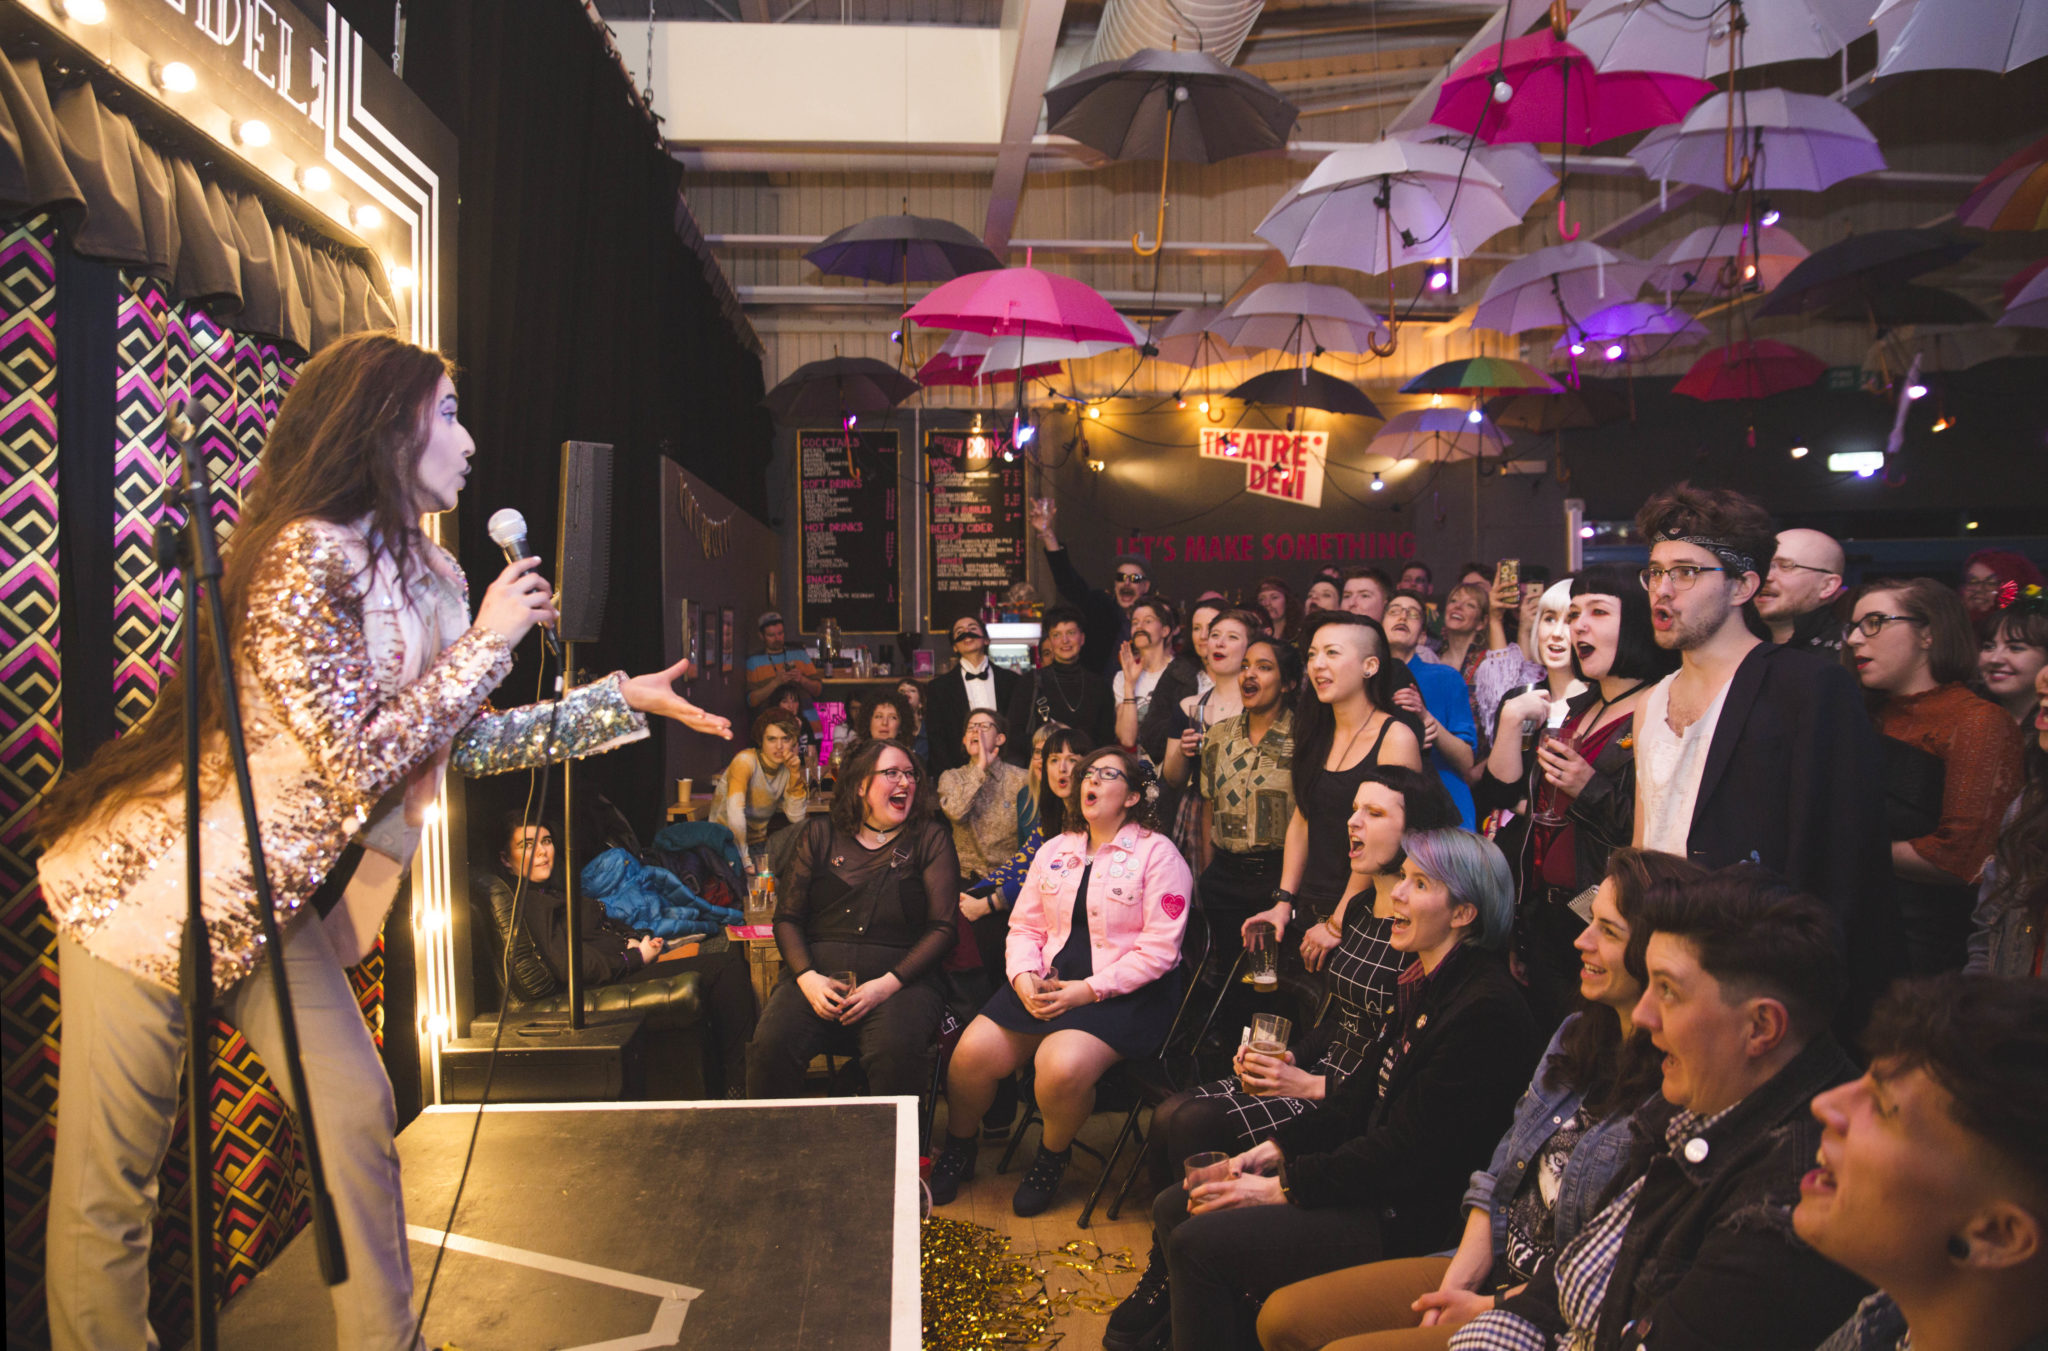 A slim, olive skinned drag king with long dark hair, stands on a small cabaret stage. In front of him is a crowd all whooping for him. They are lit by warm light and surrounded by lots of umbrellas hanging from the ceiling